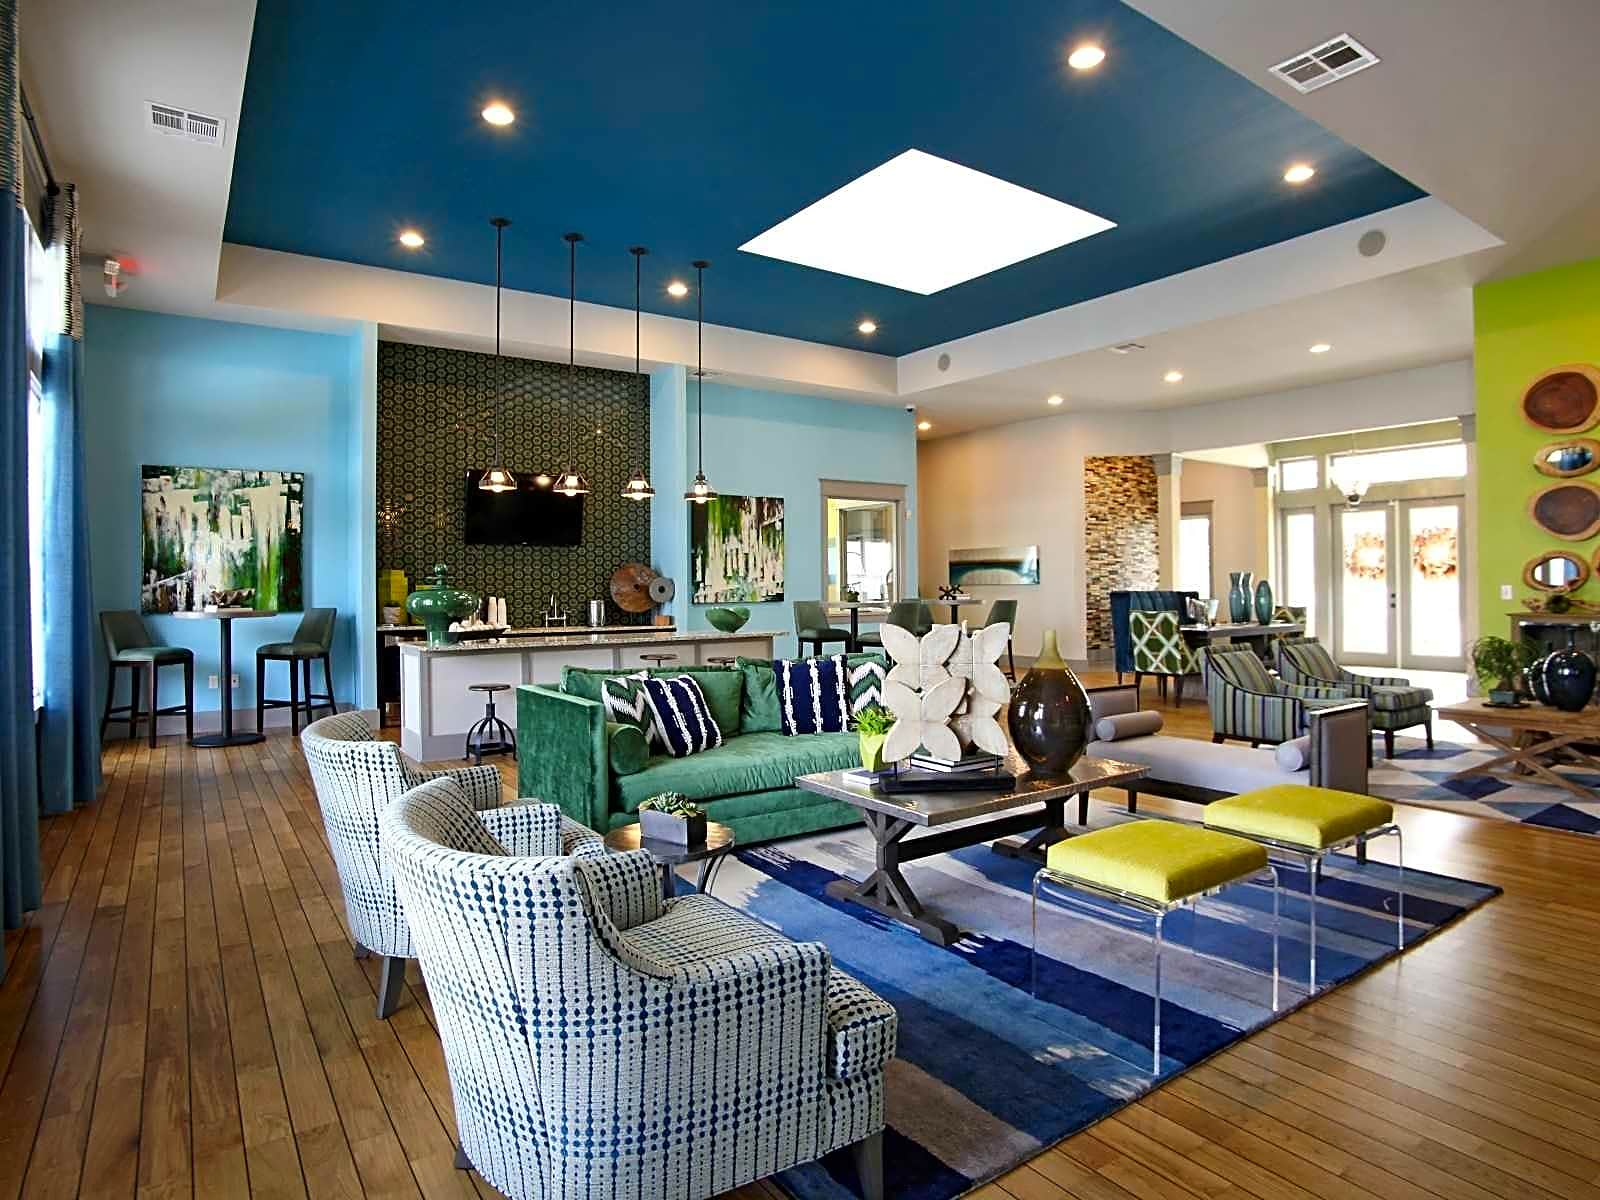 Apartments Near Day Spa Career College Arbor Landing for Day Spa Career College Students in Ocean Springs, MS